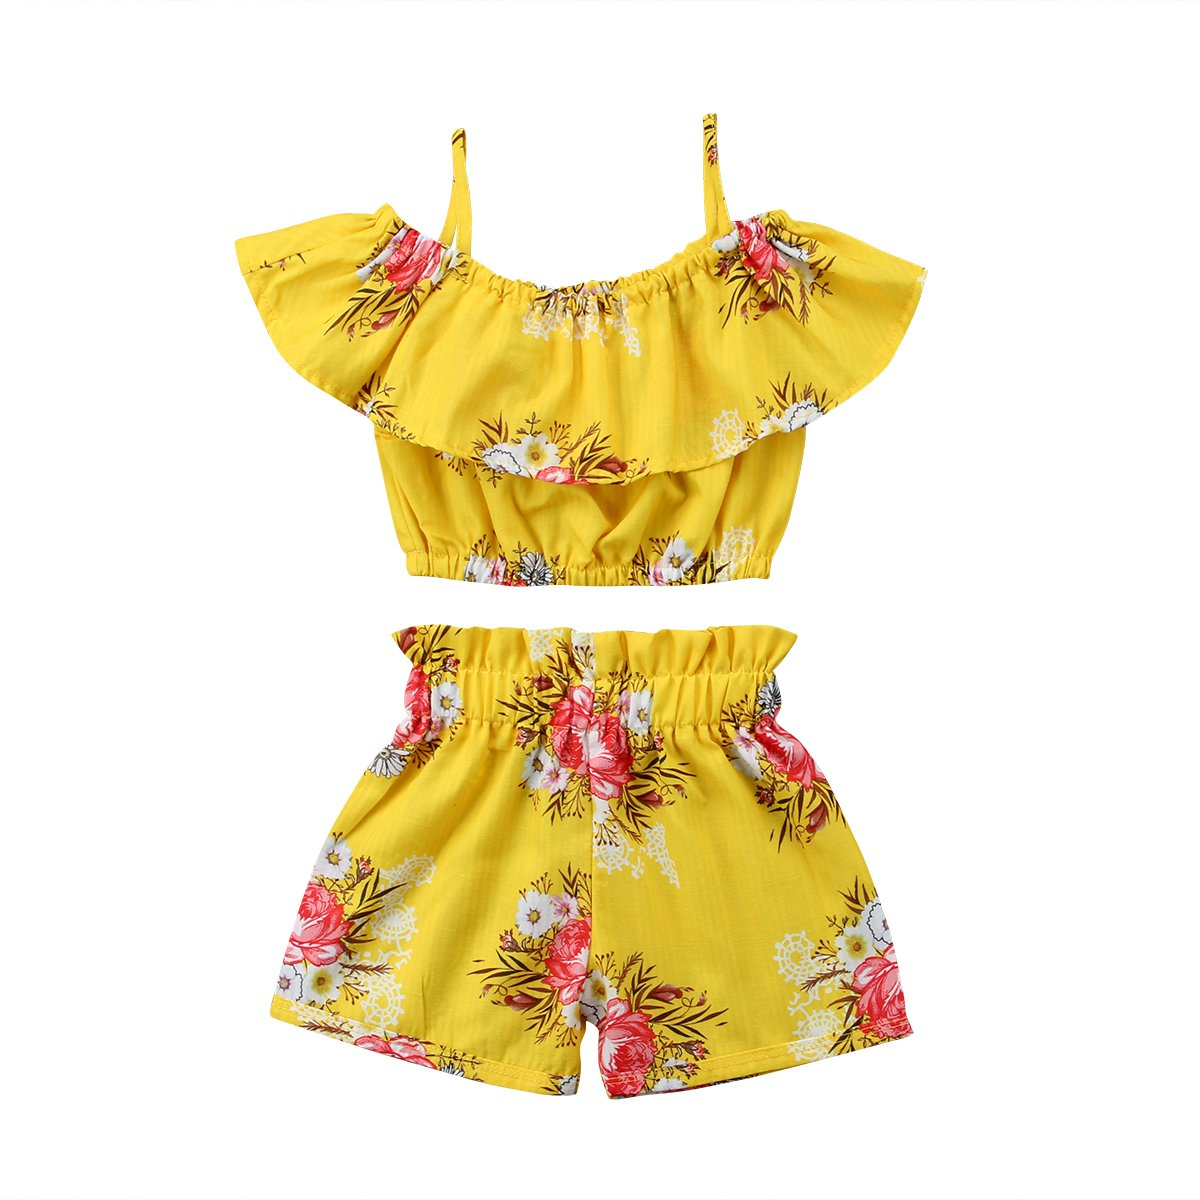 Yellow,1-6 Years Carolilly Girls Clothing Set,2Pcs Floral Printed Ruffle T-Shirt Tops Shorts//Pants Outfits